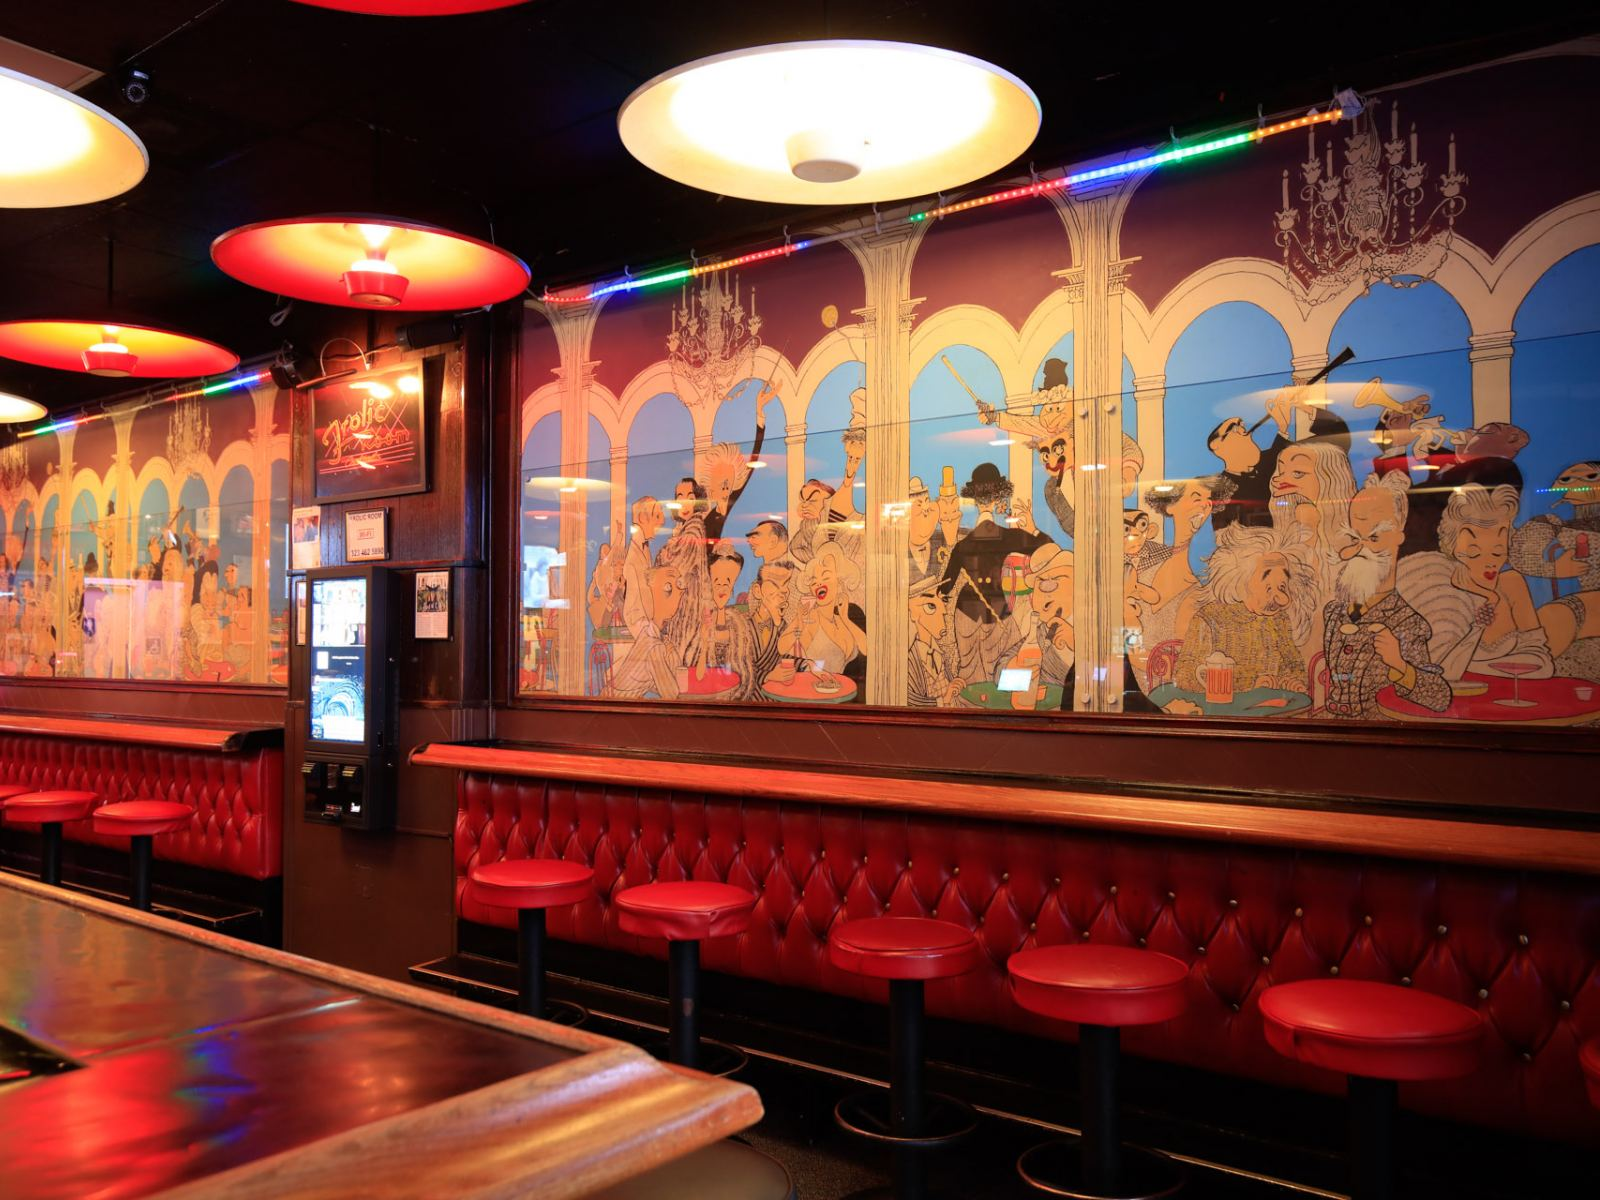 Hirschfeld's famous mural of celebrity caricatures inside the Frolic Room